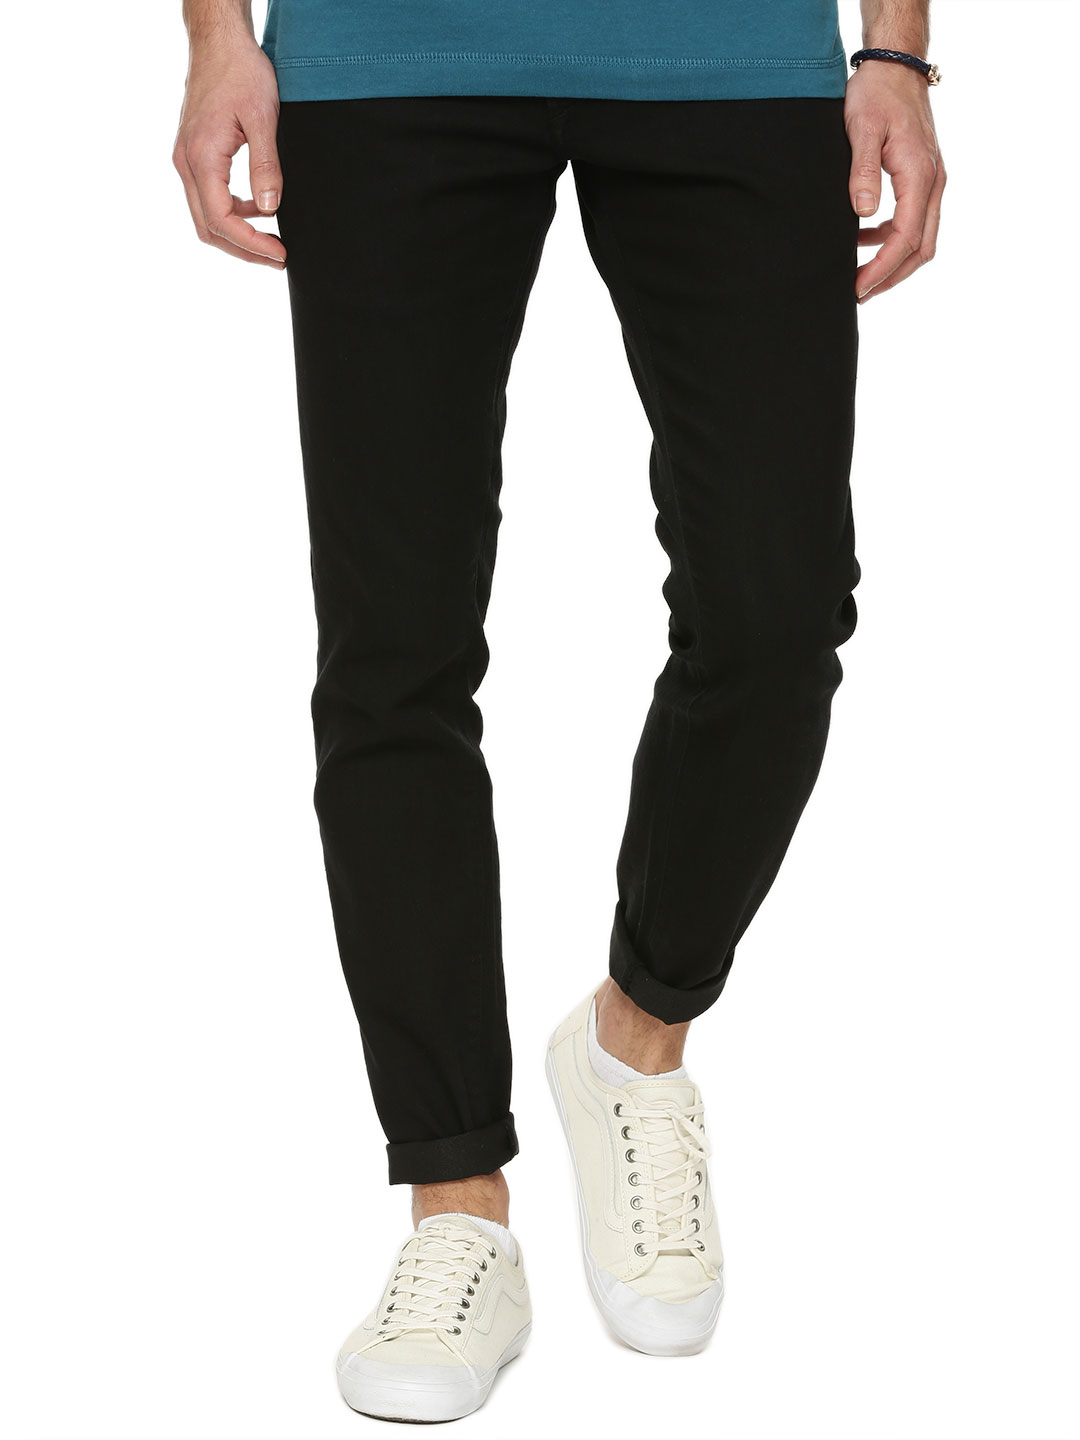 Solid Black Slim Fit Stretch Jeans 1